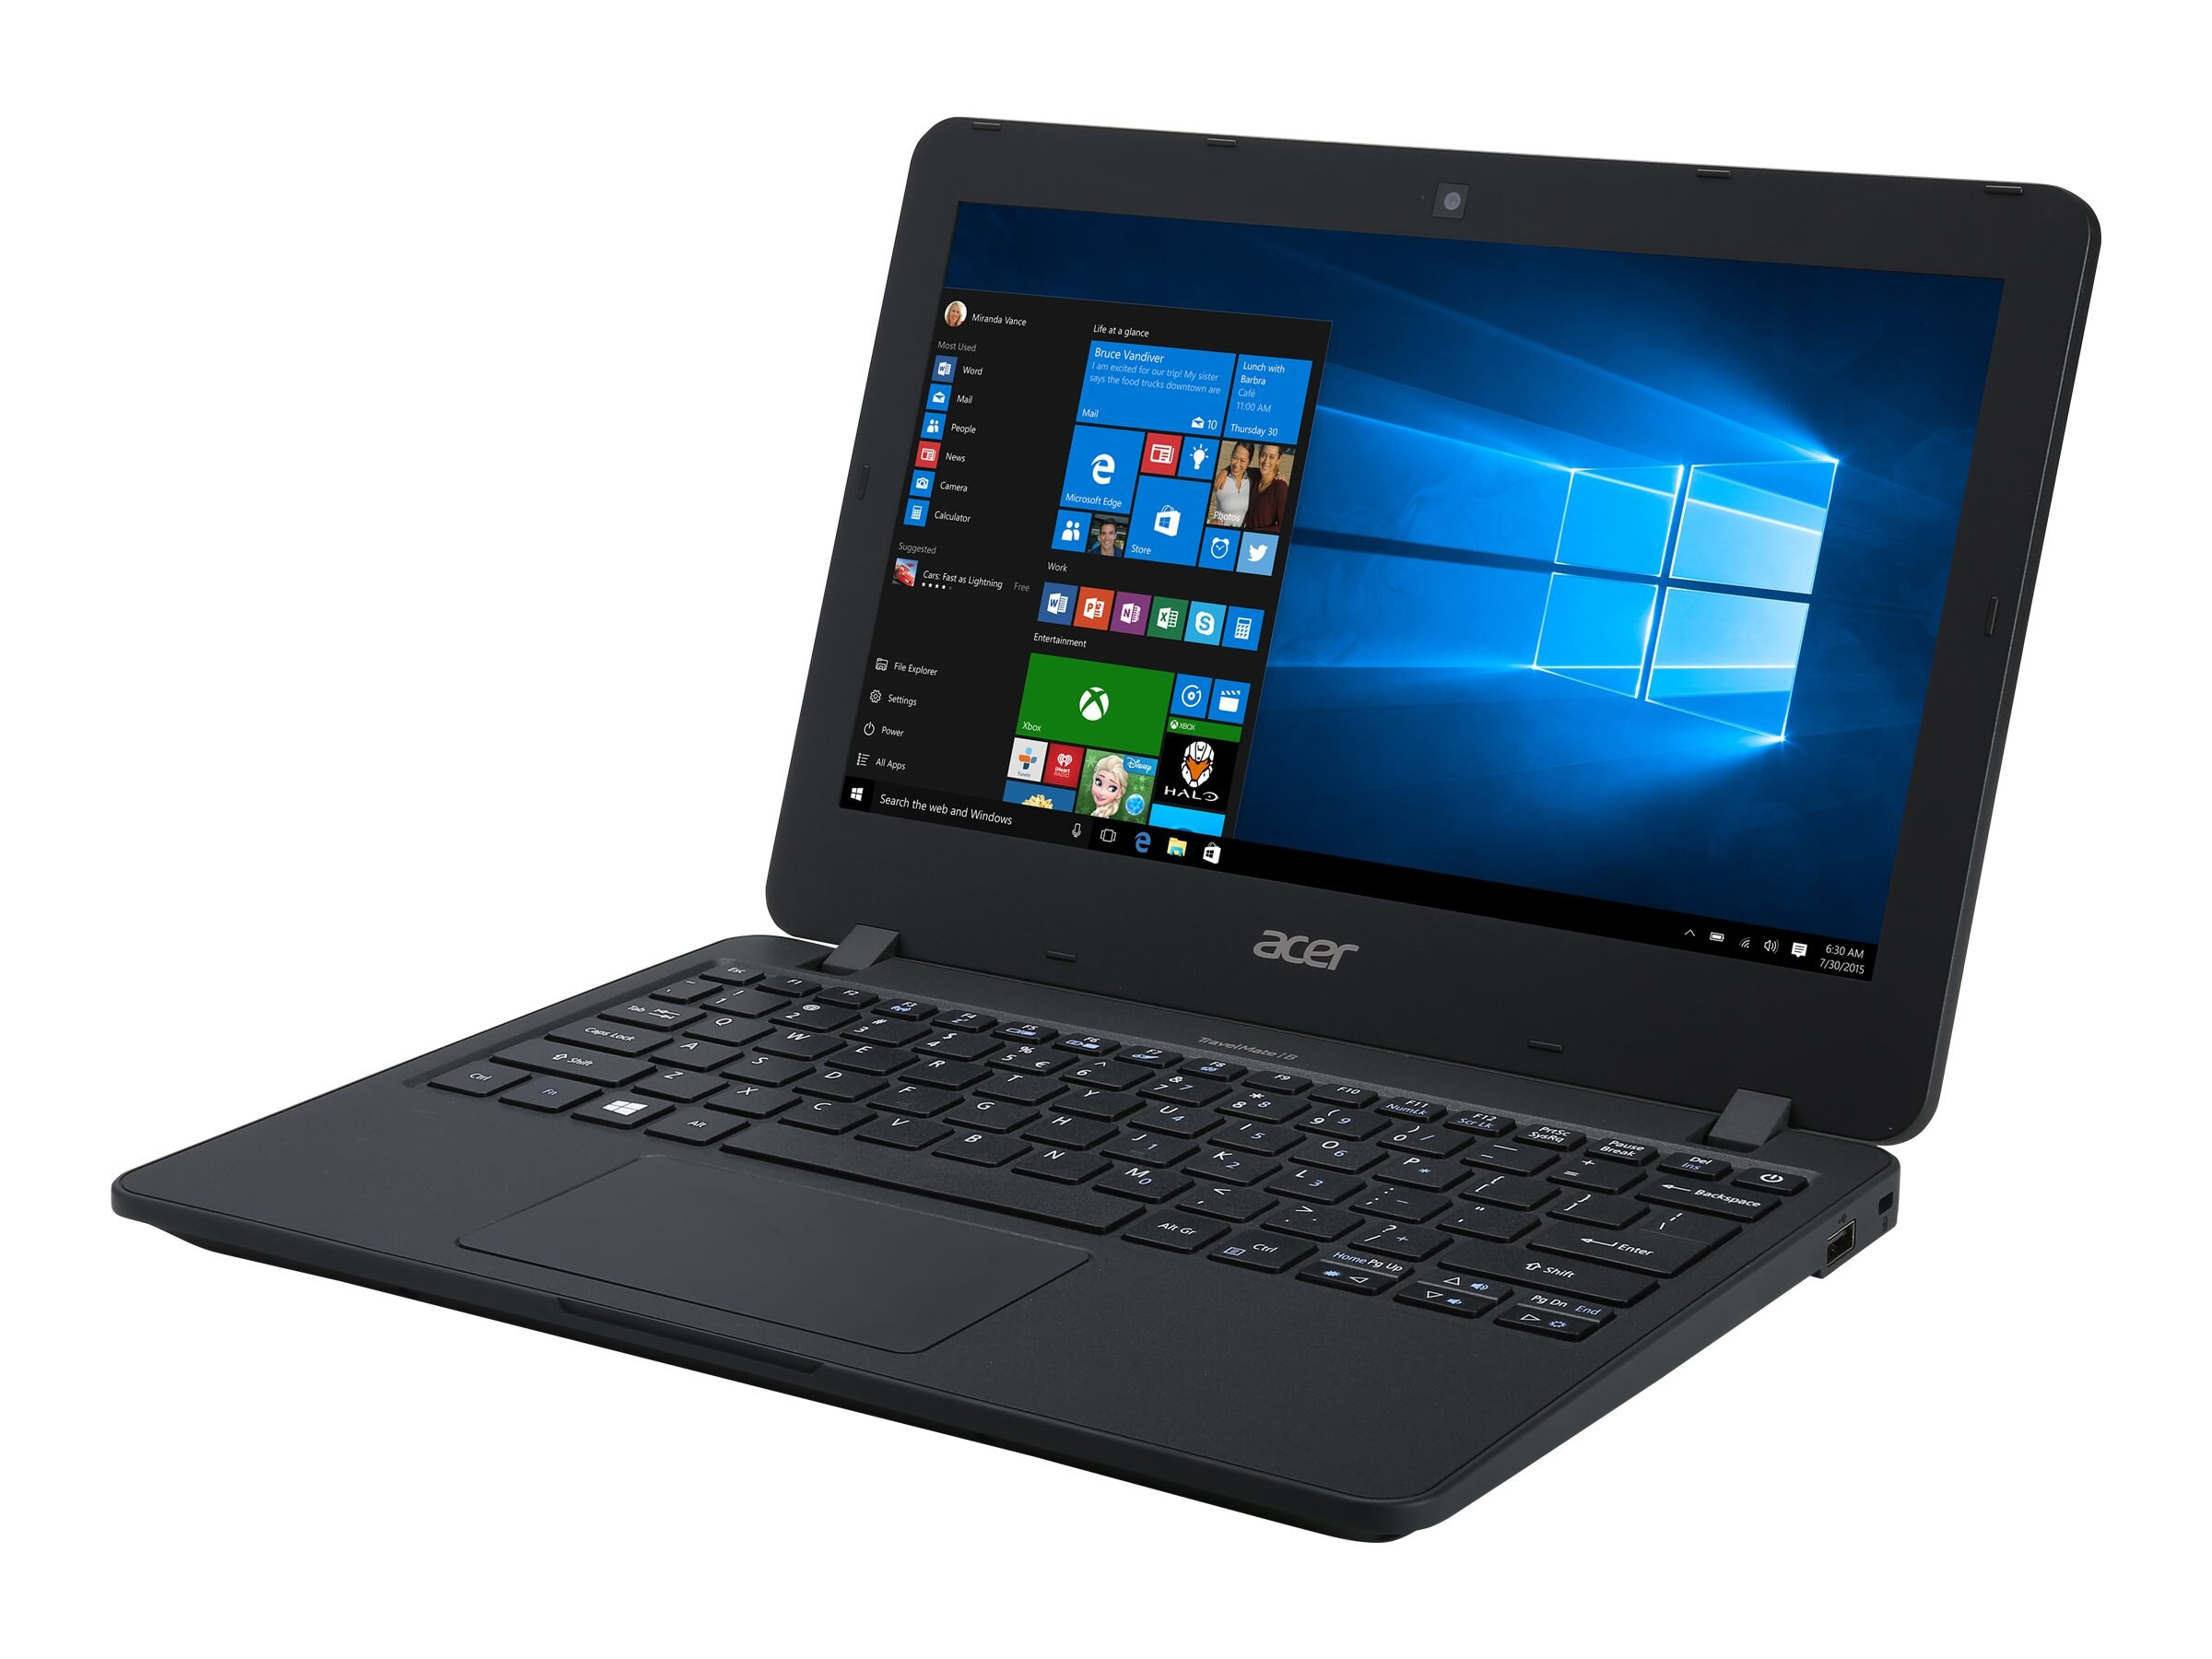 Acer Shape the Future TravelMate B117-MP-C2G3 Celeron N3060 1.6GHz 4GB 32GB ac BT 11.6 HD MT W10P64